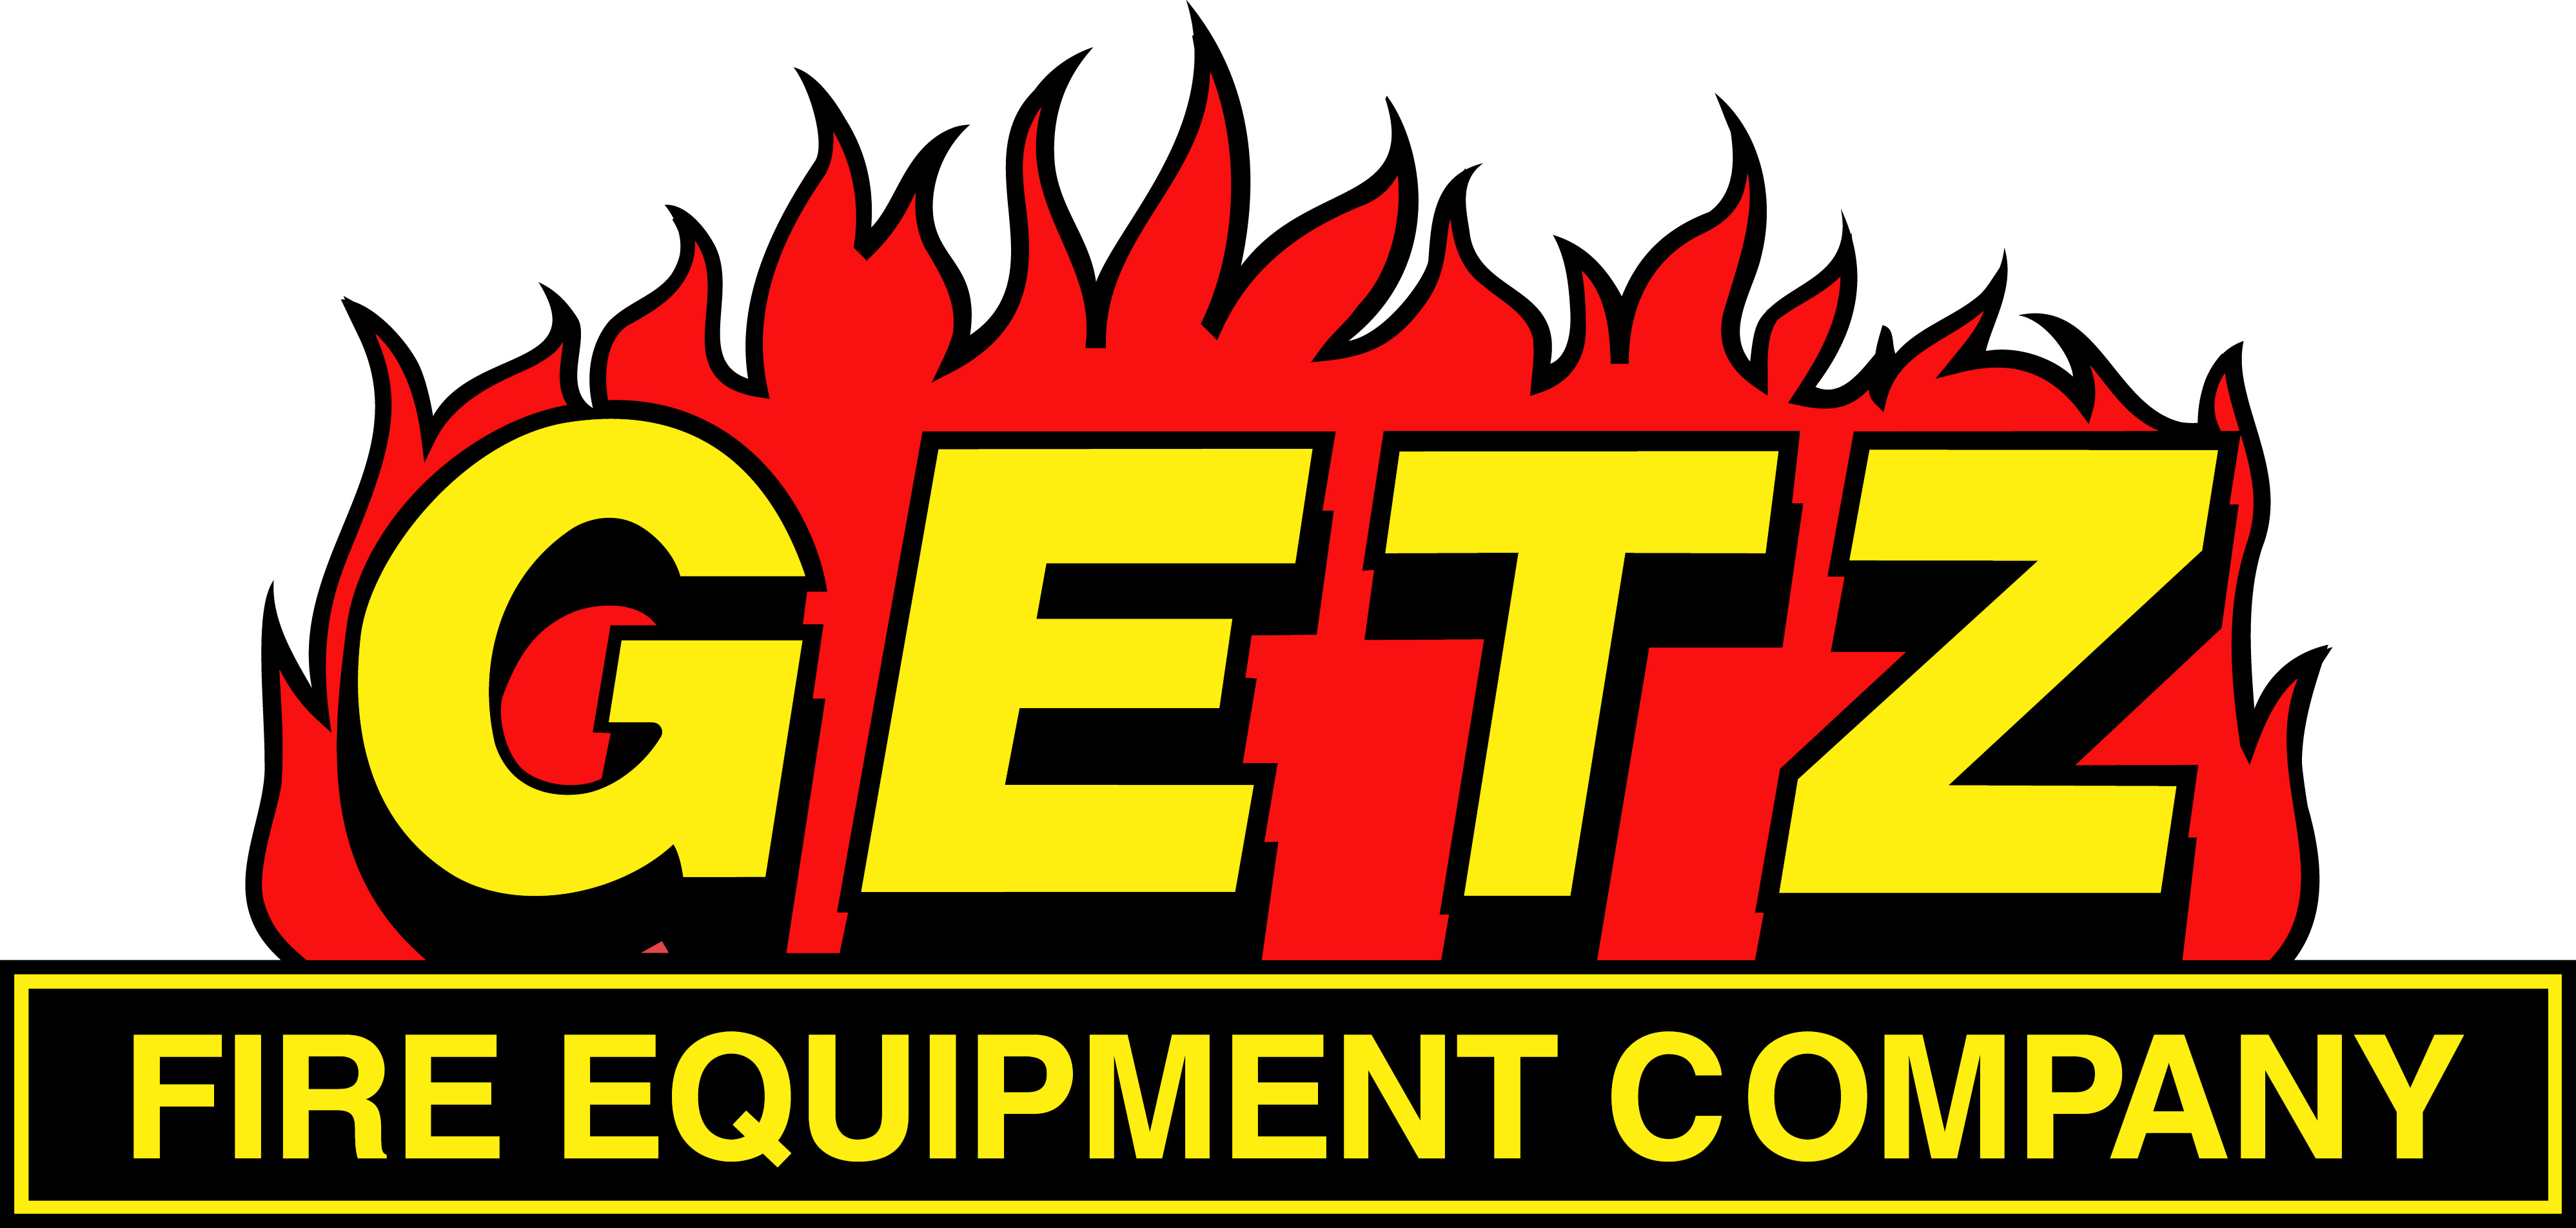 Firefighter equipment store coupon